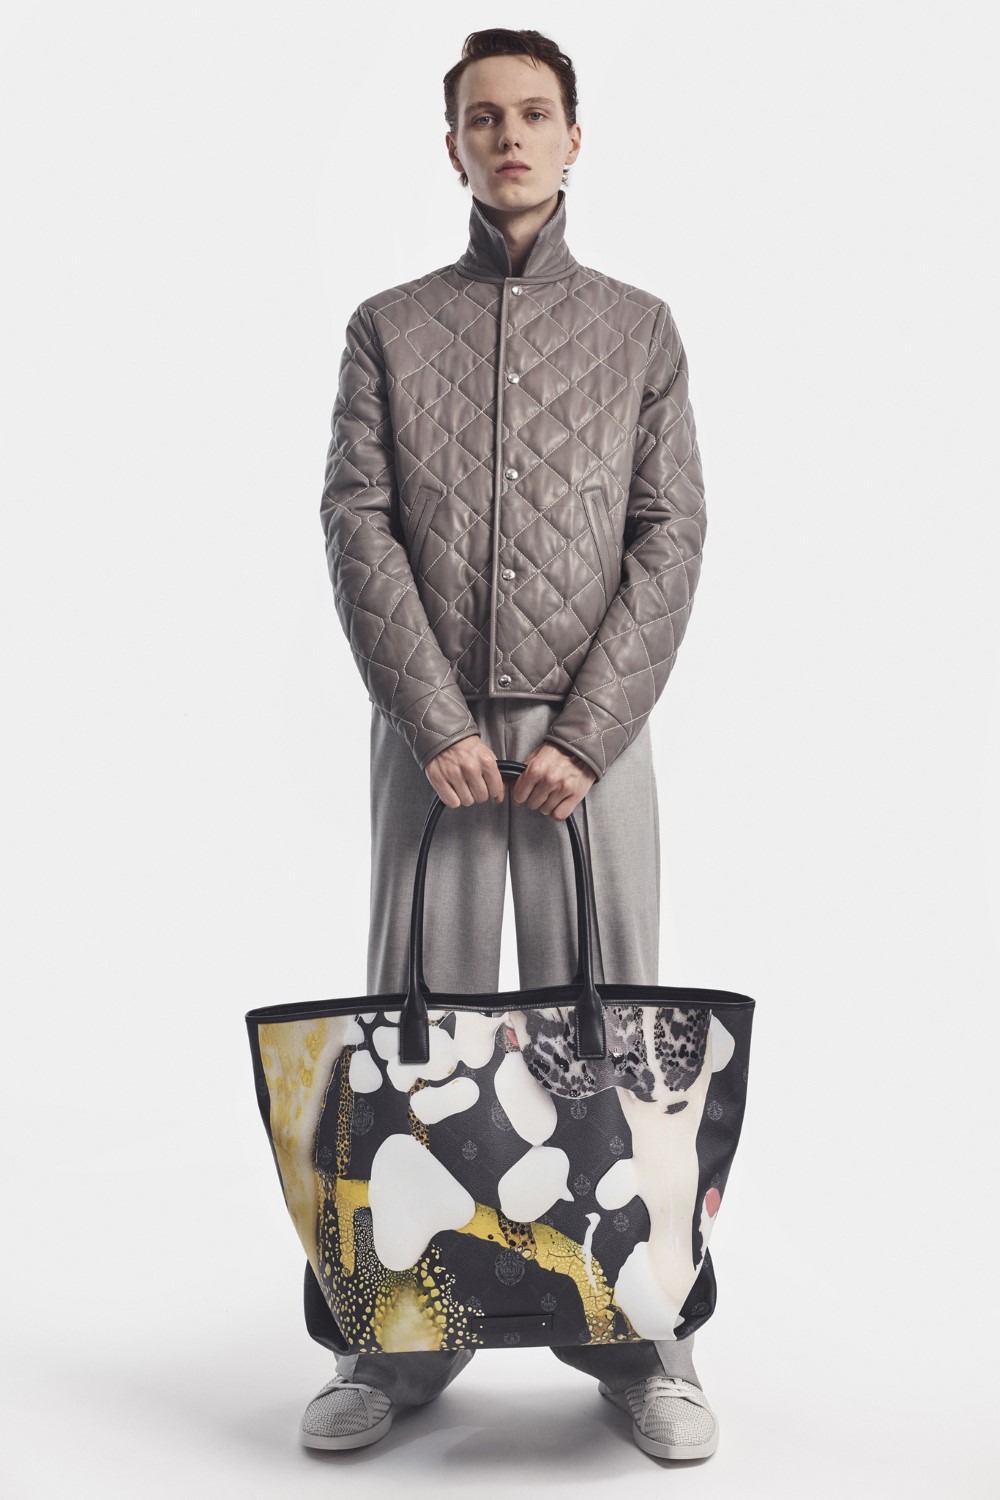 Berluti Spring-Summer 2021 Lookbook